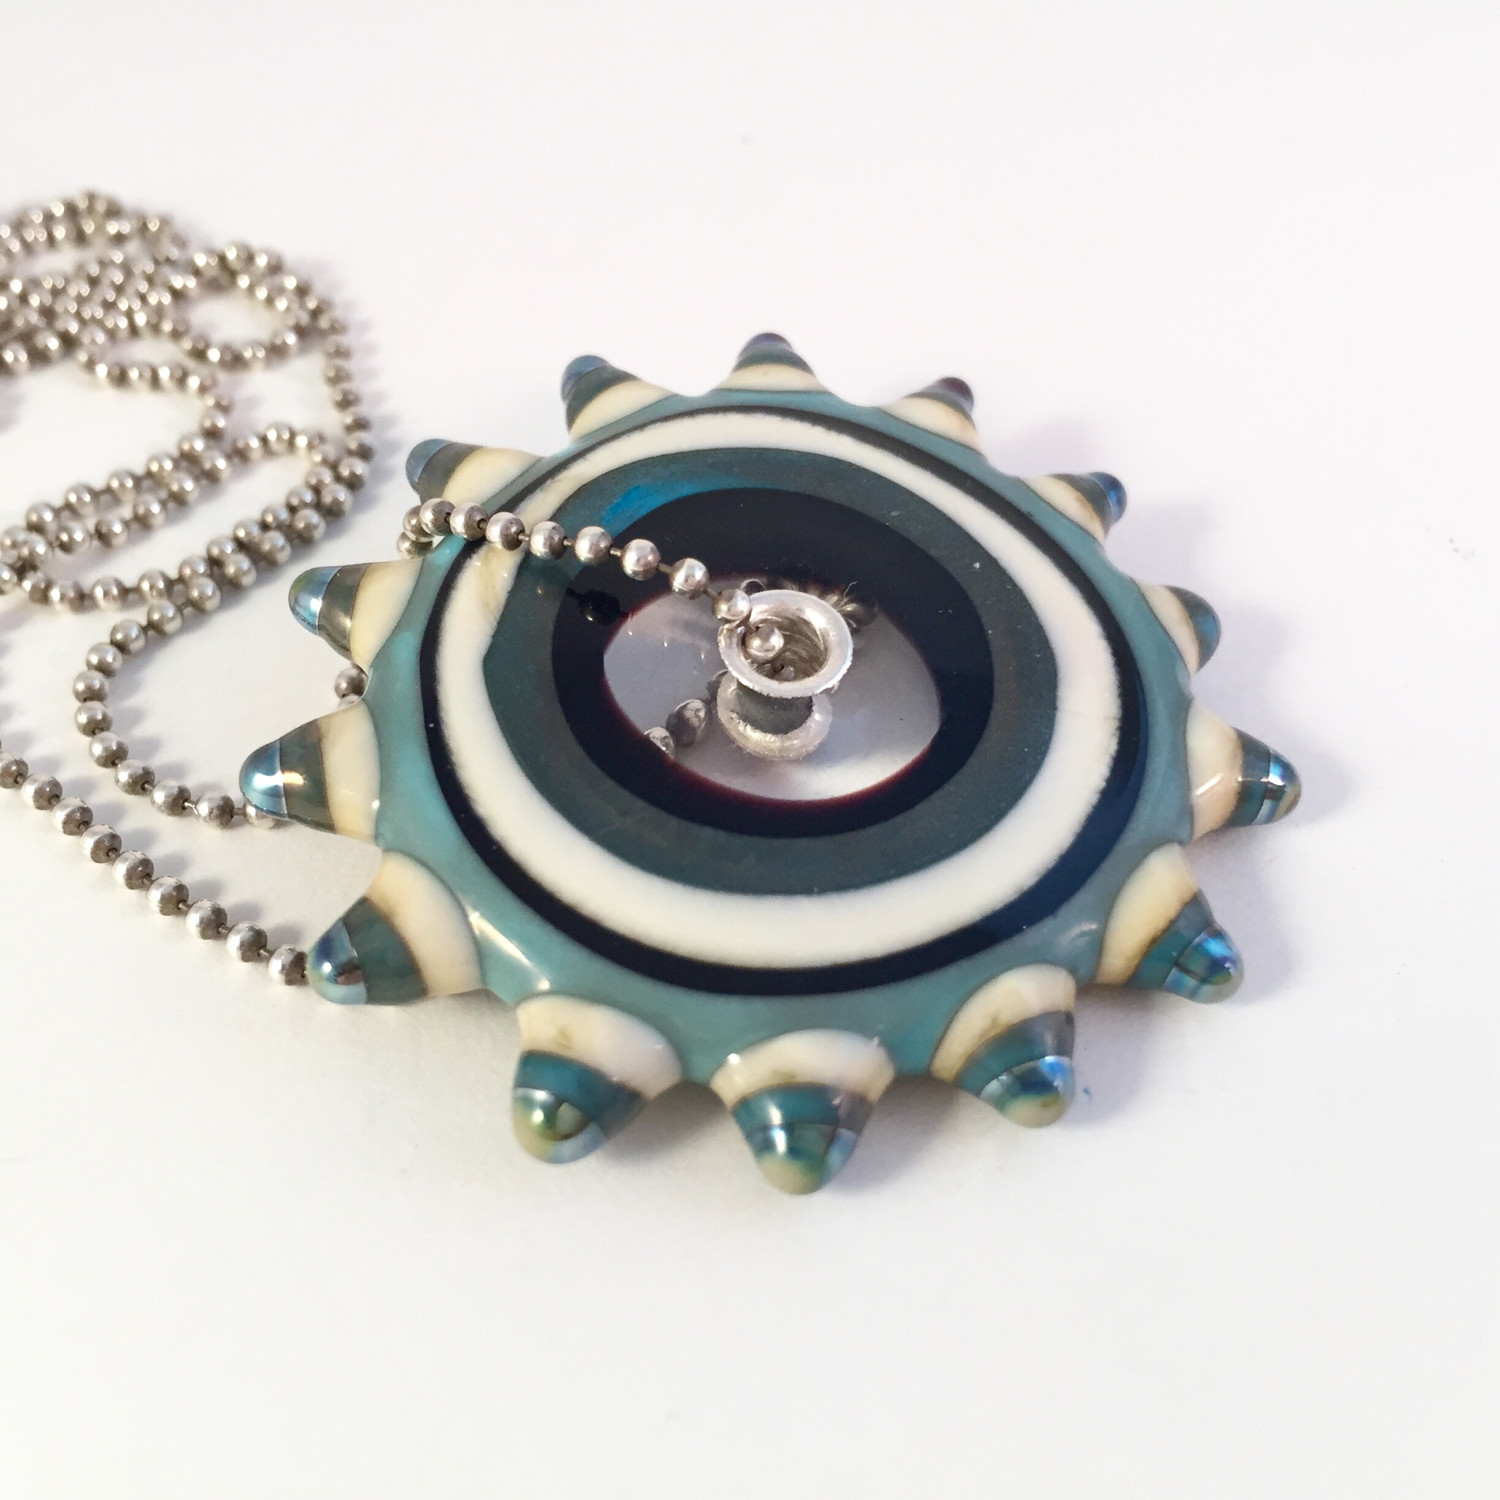 Gear necklace